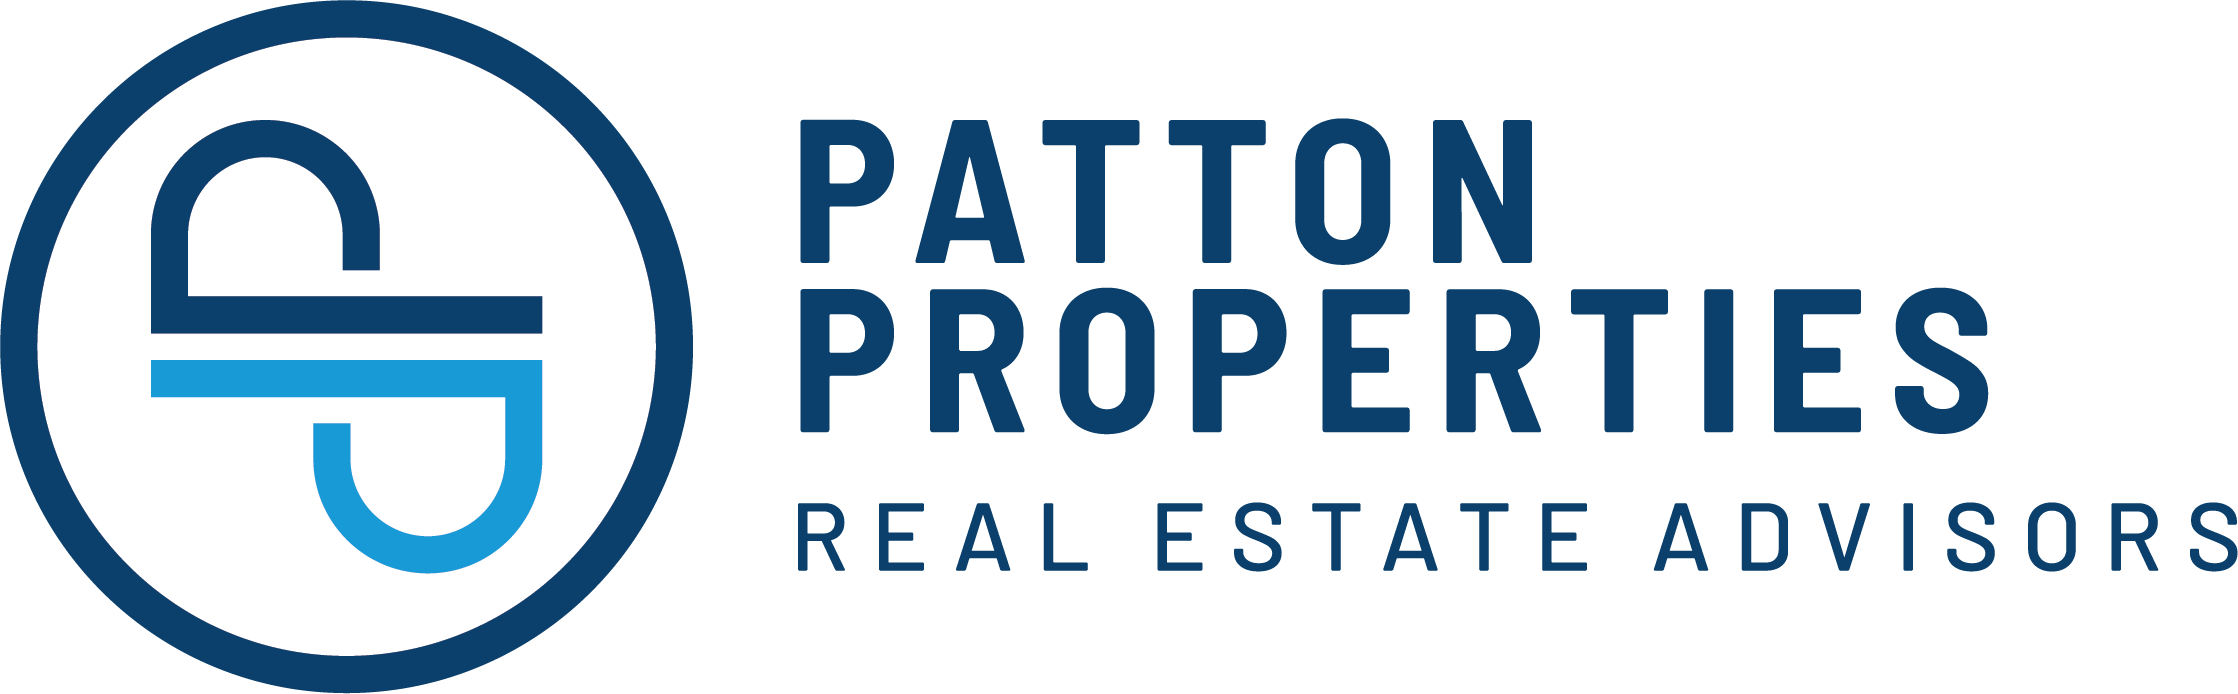 Patton Properties